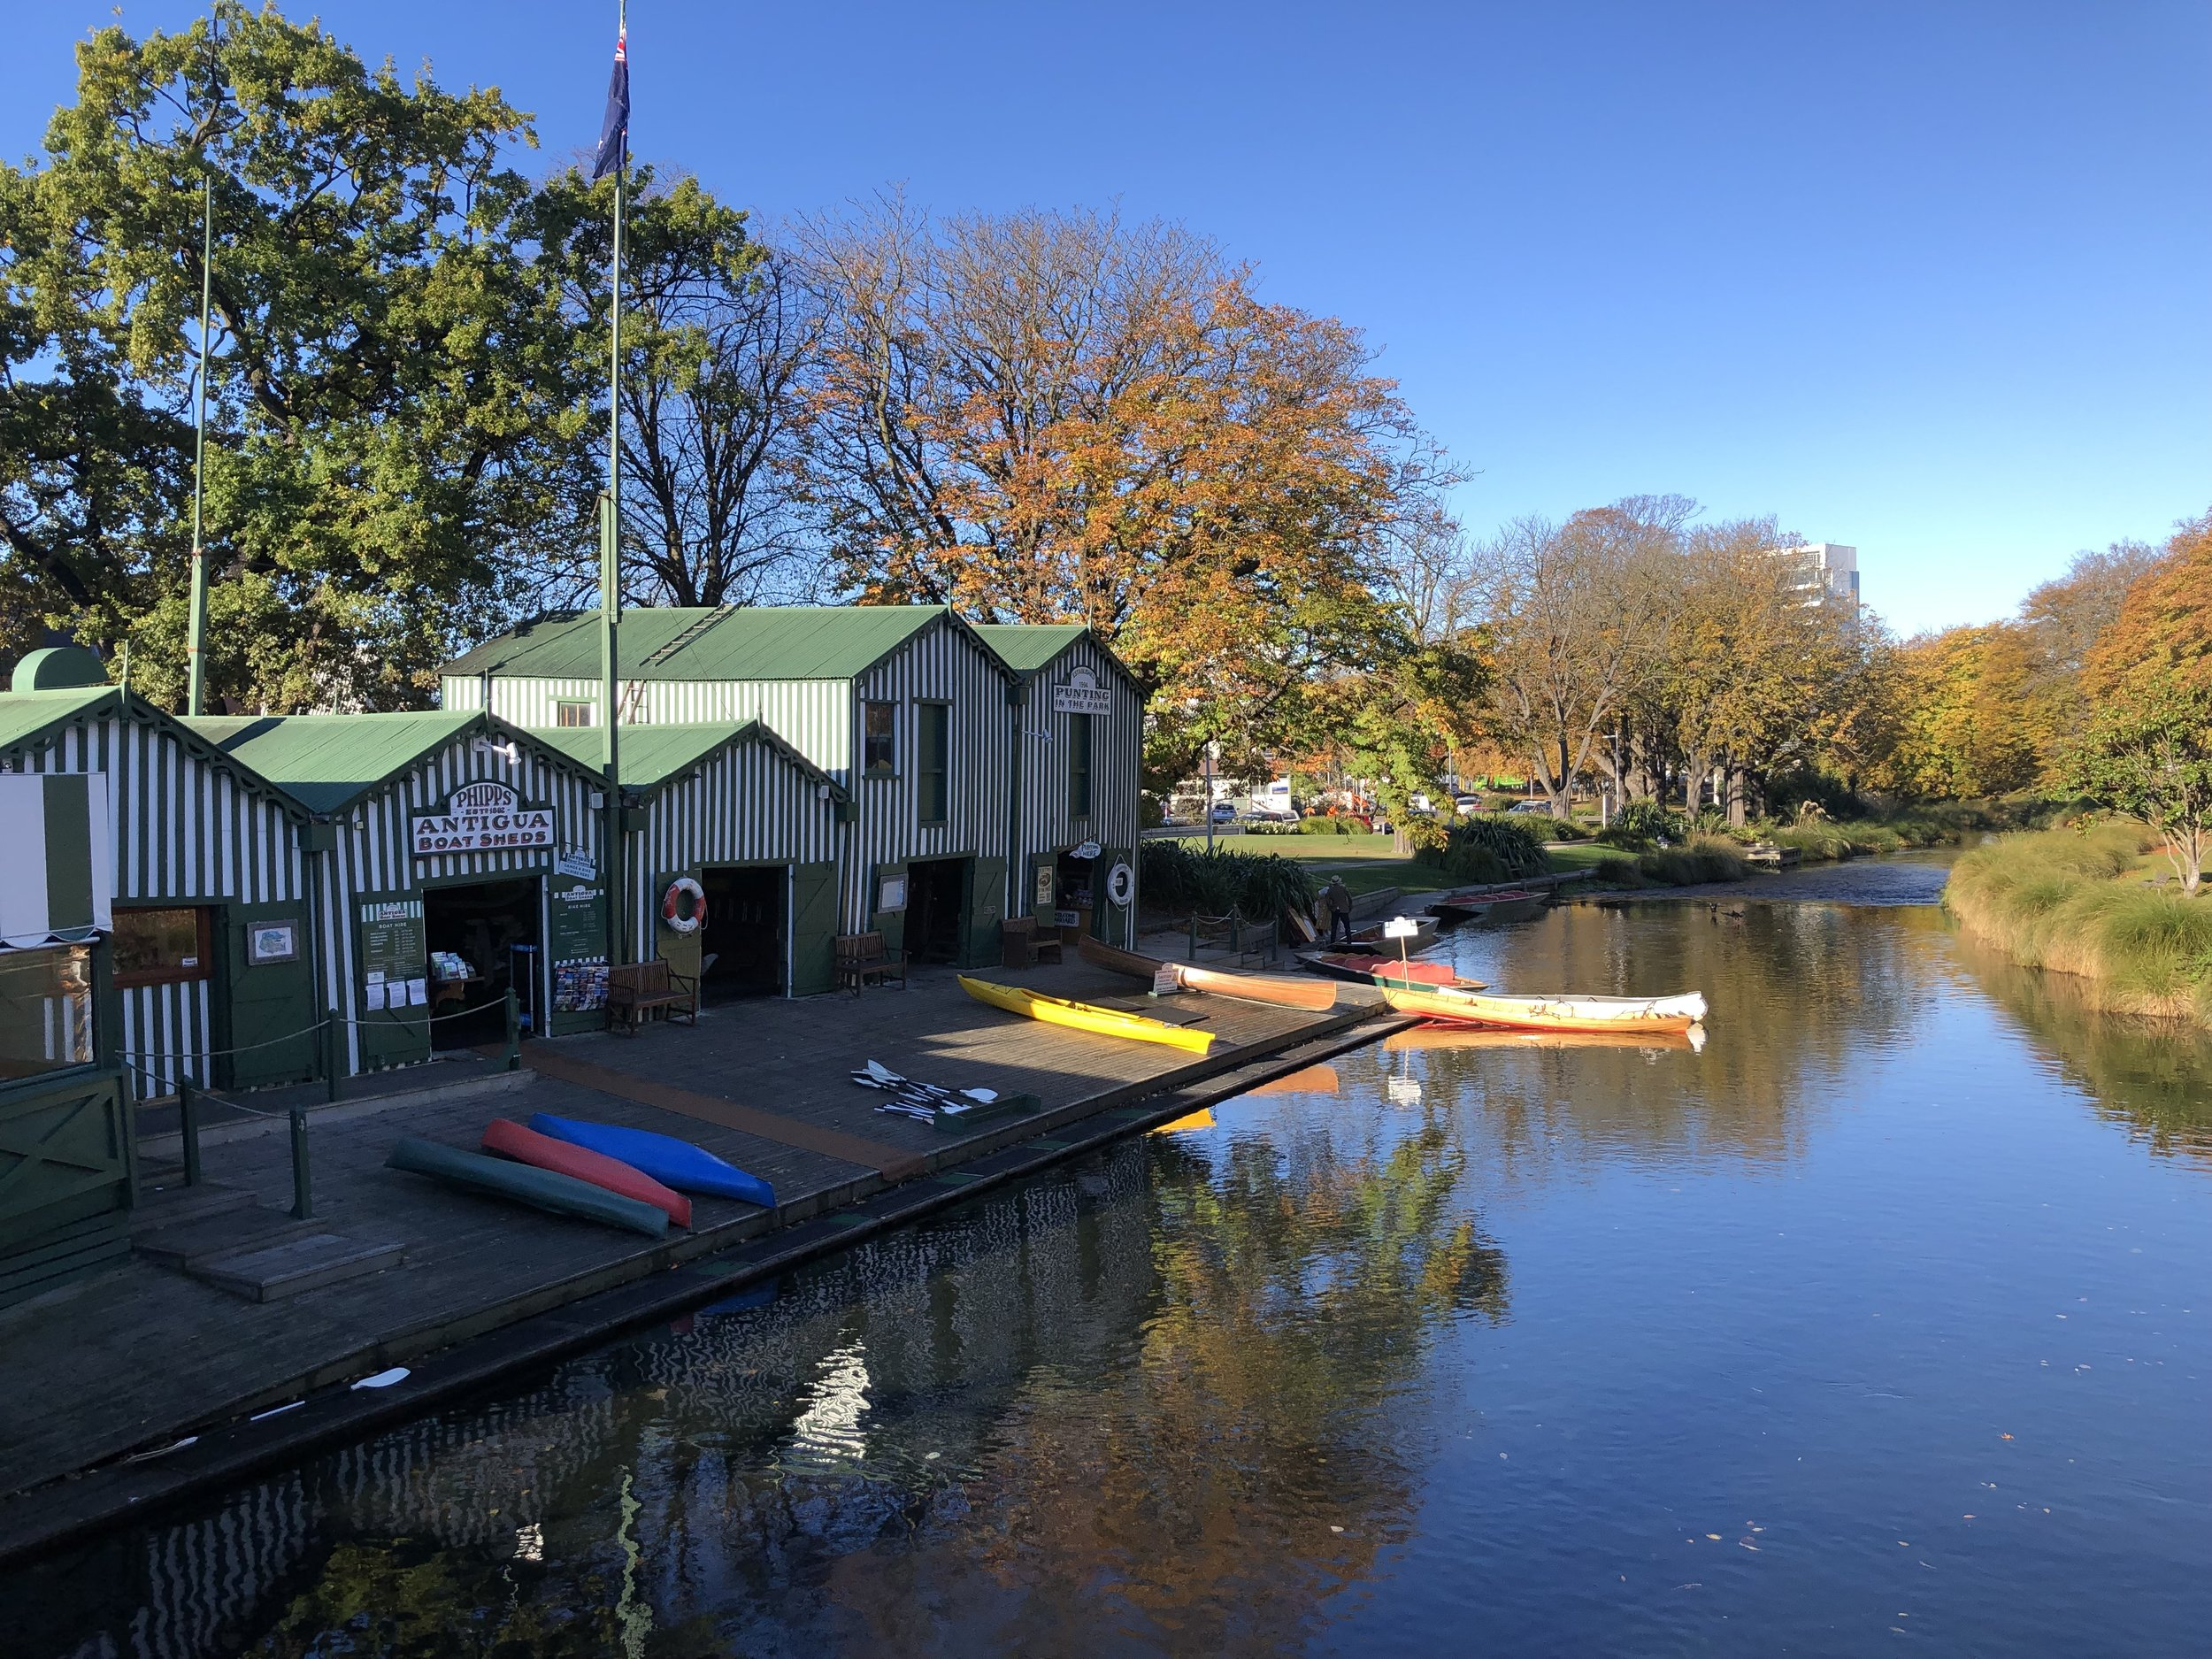 Antigua boat sheds, avon river, Christchurch photo by Sunstone